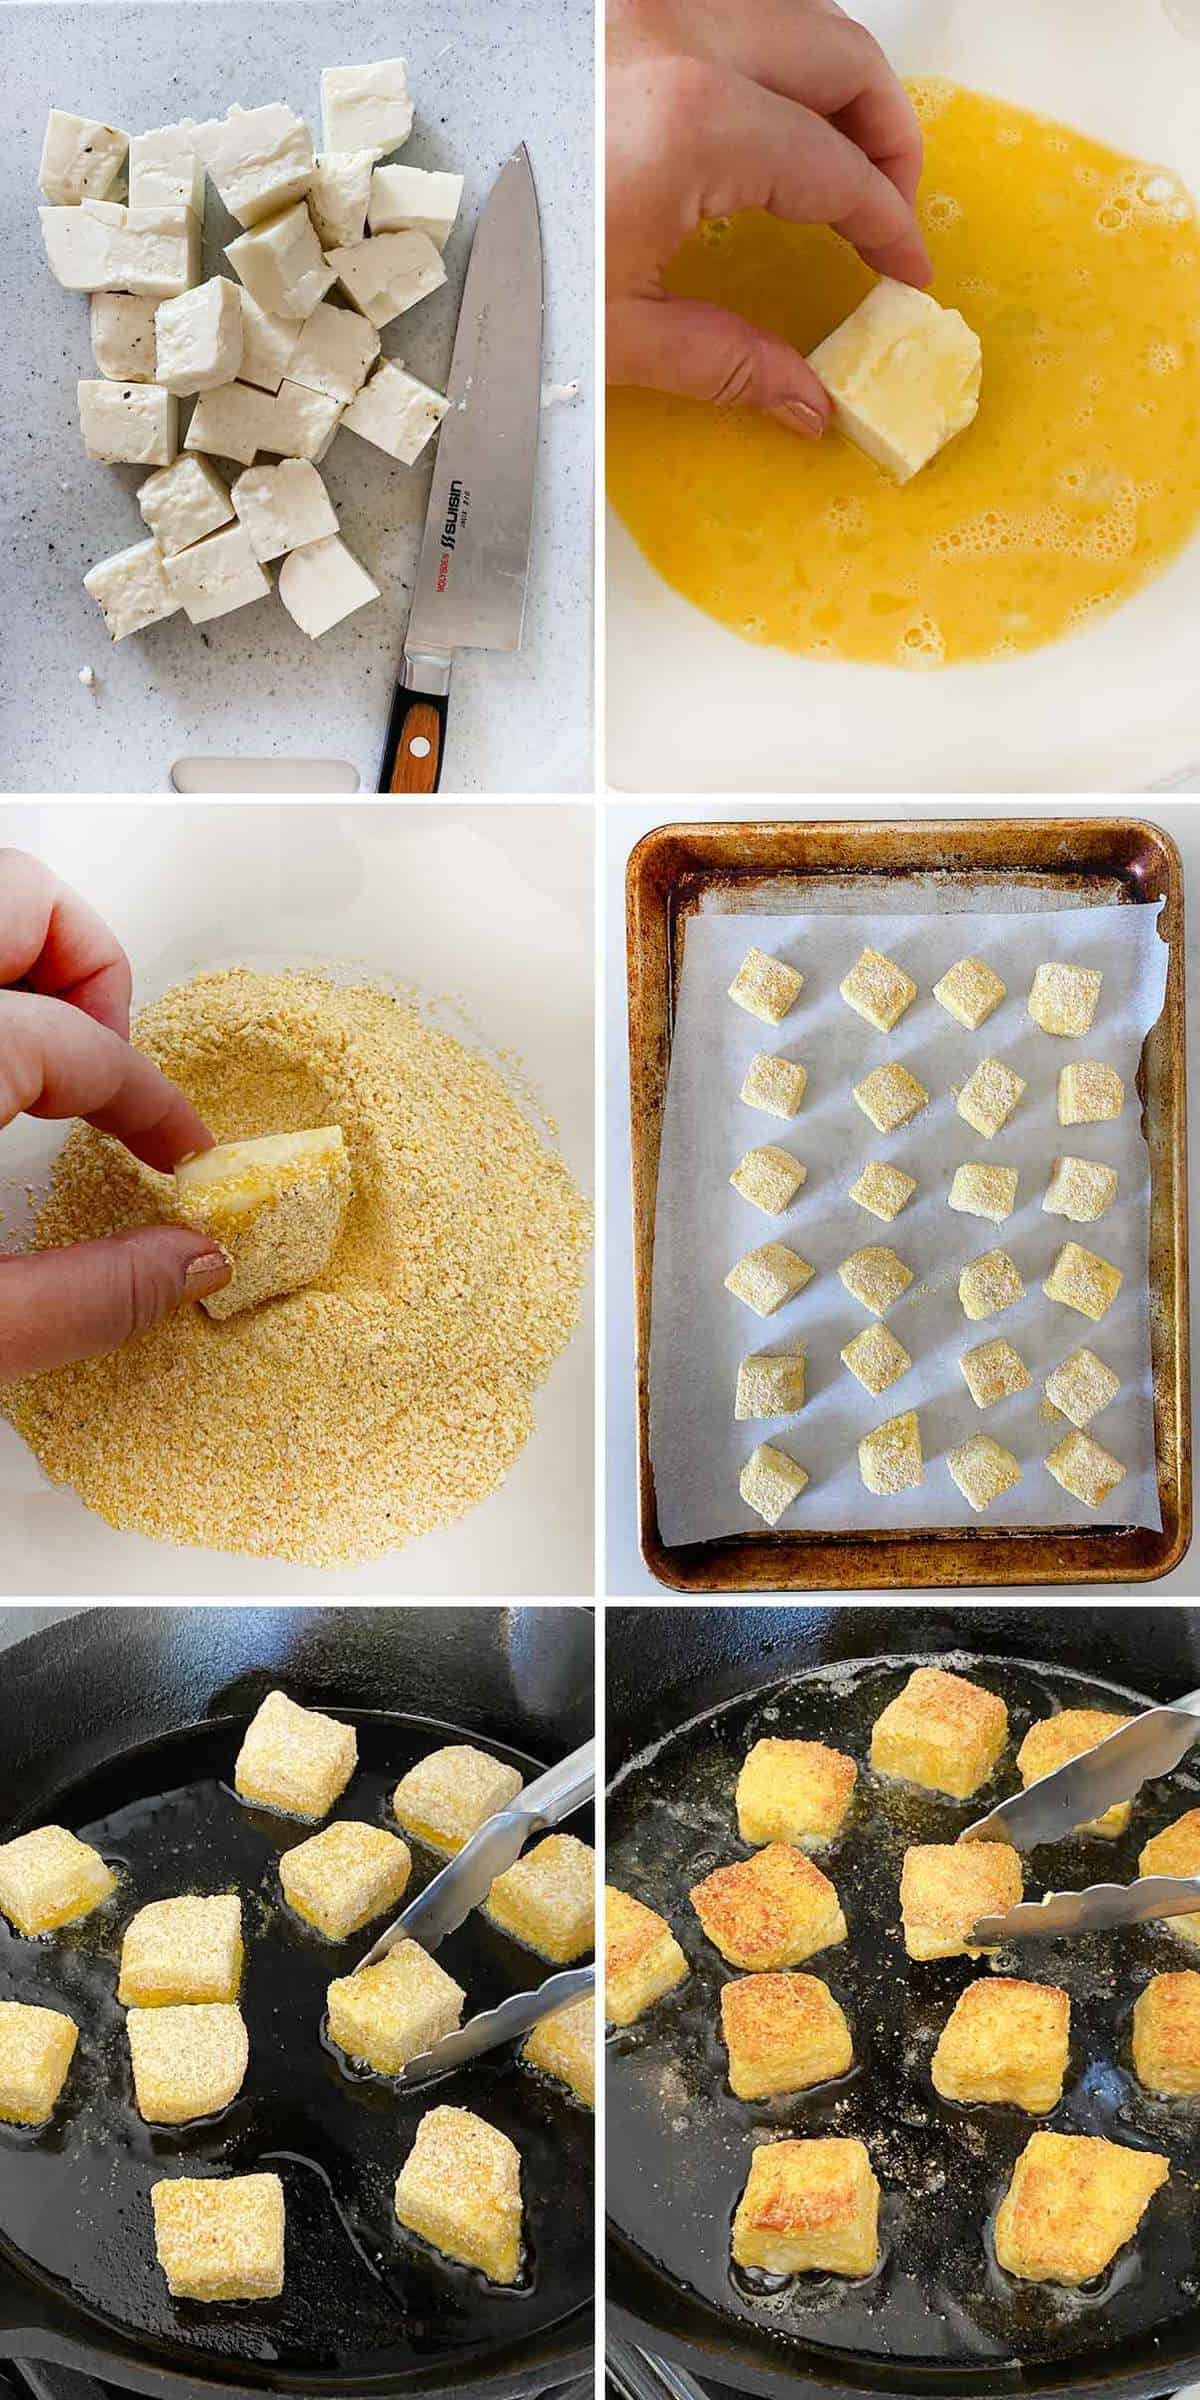 Process collage showing breading halloumi cheese cubes in egg and cornmeal and pan-frying in olive oil.